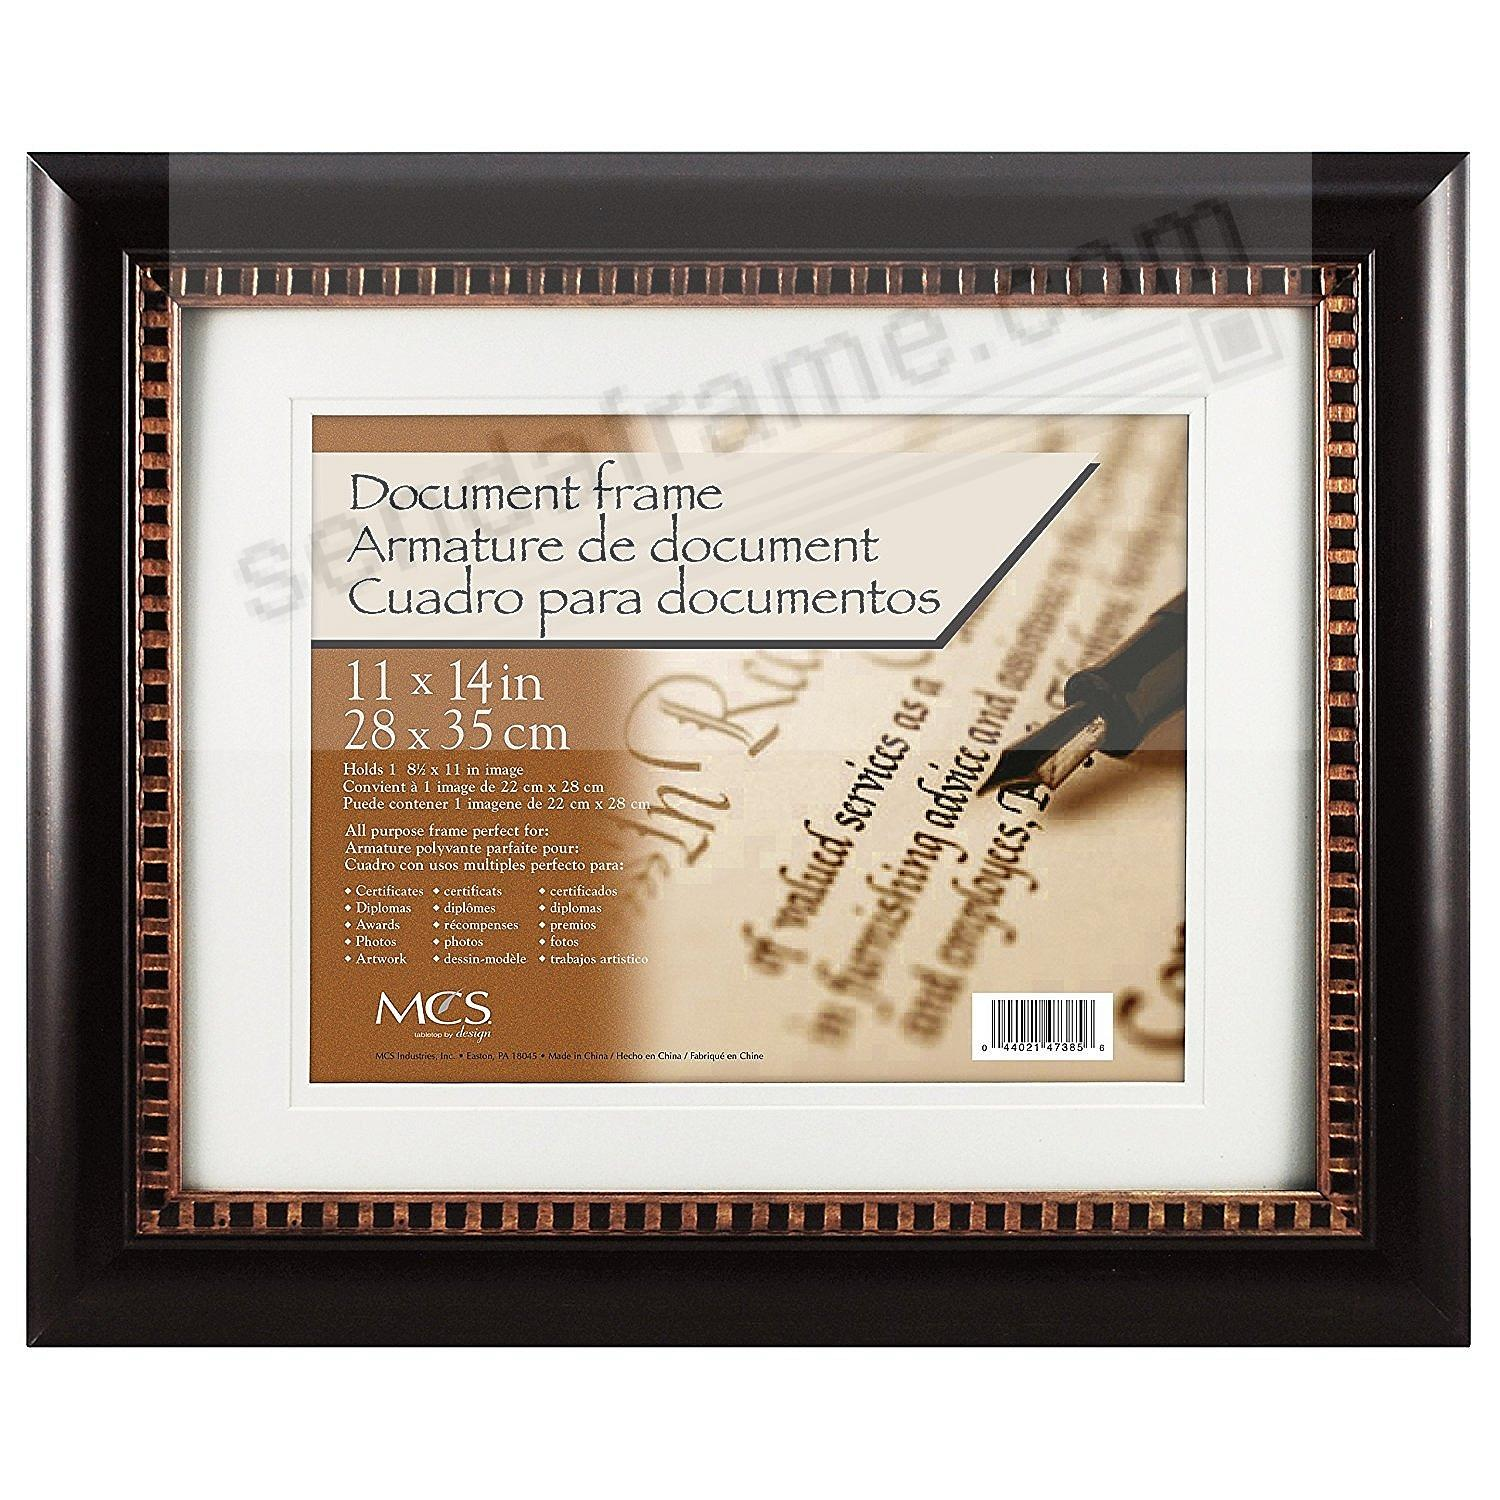 DAVENPORT BRONZE DOUBLE MATTED Fancy Certificate frame by MCS®